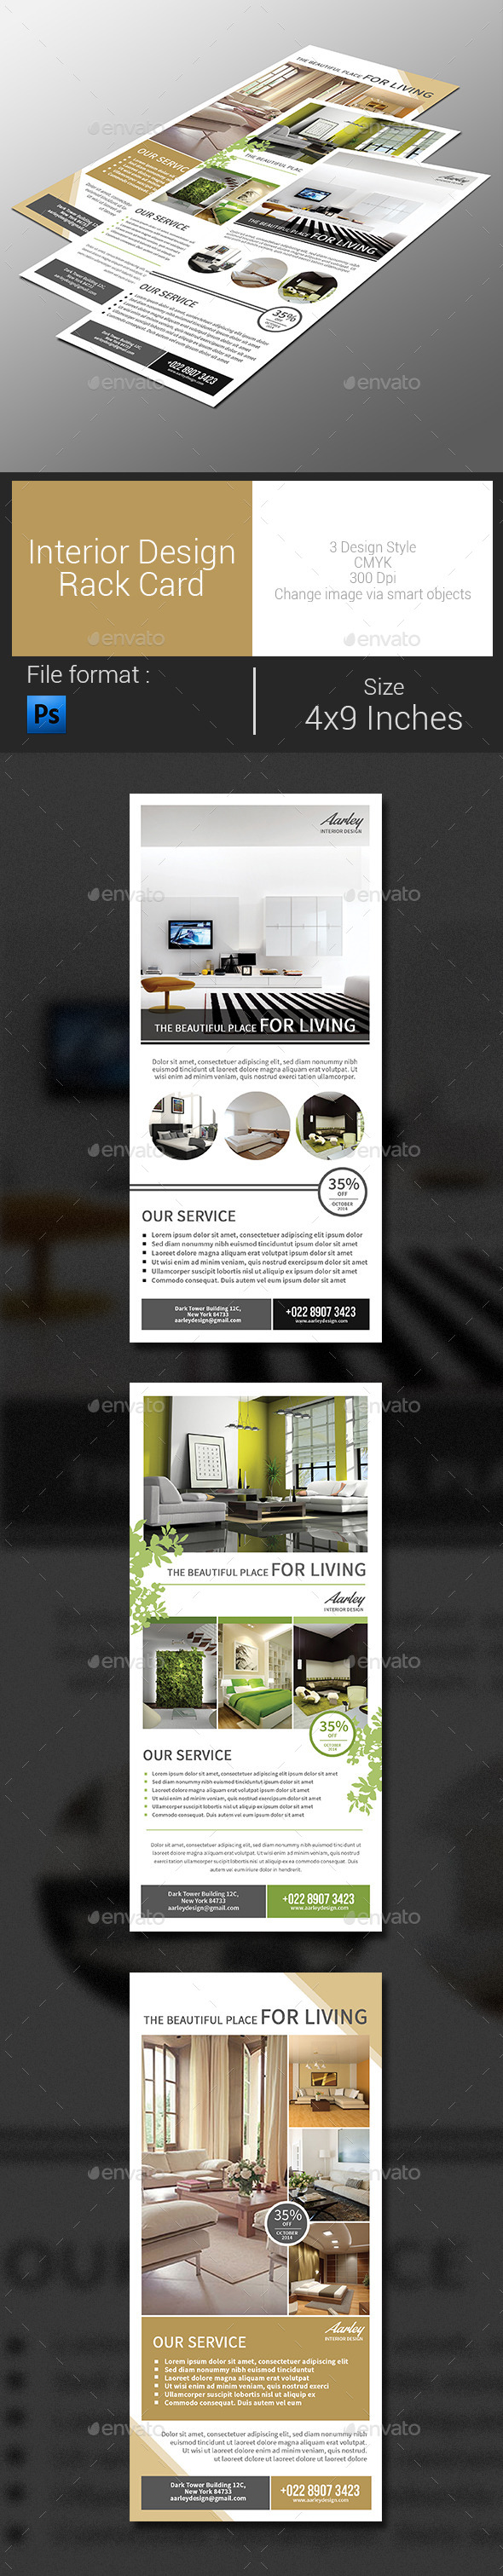 Interior Design Rack Card - Corporate Flyers